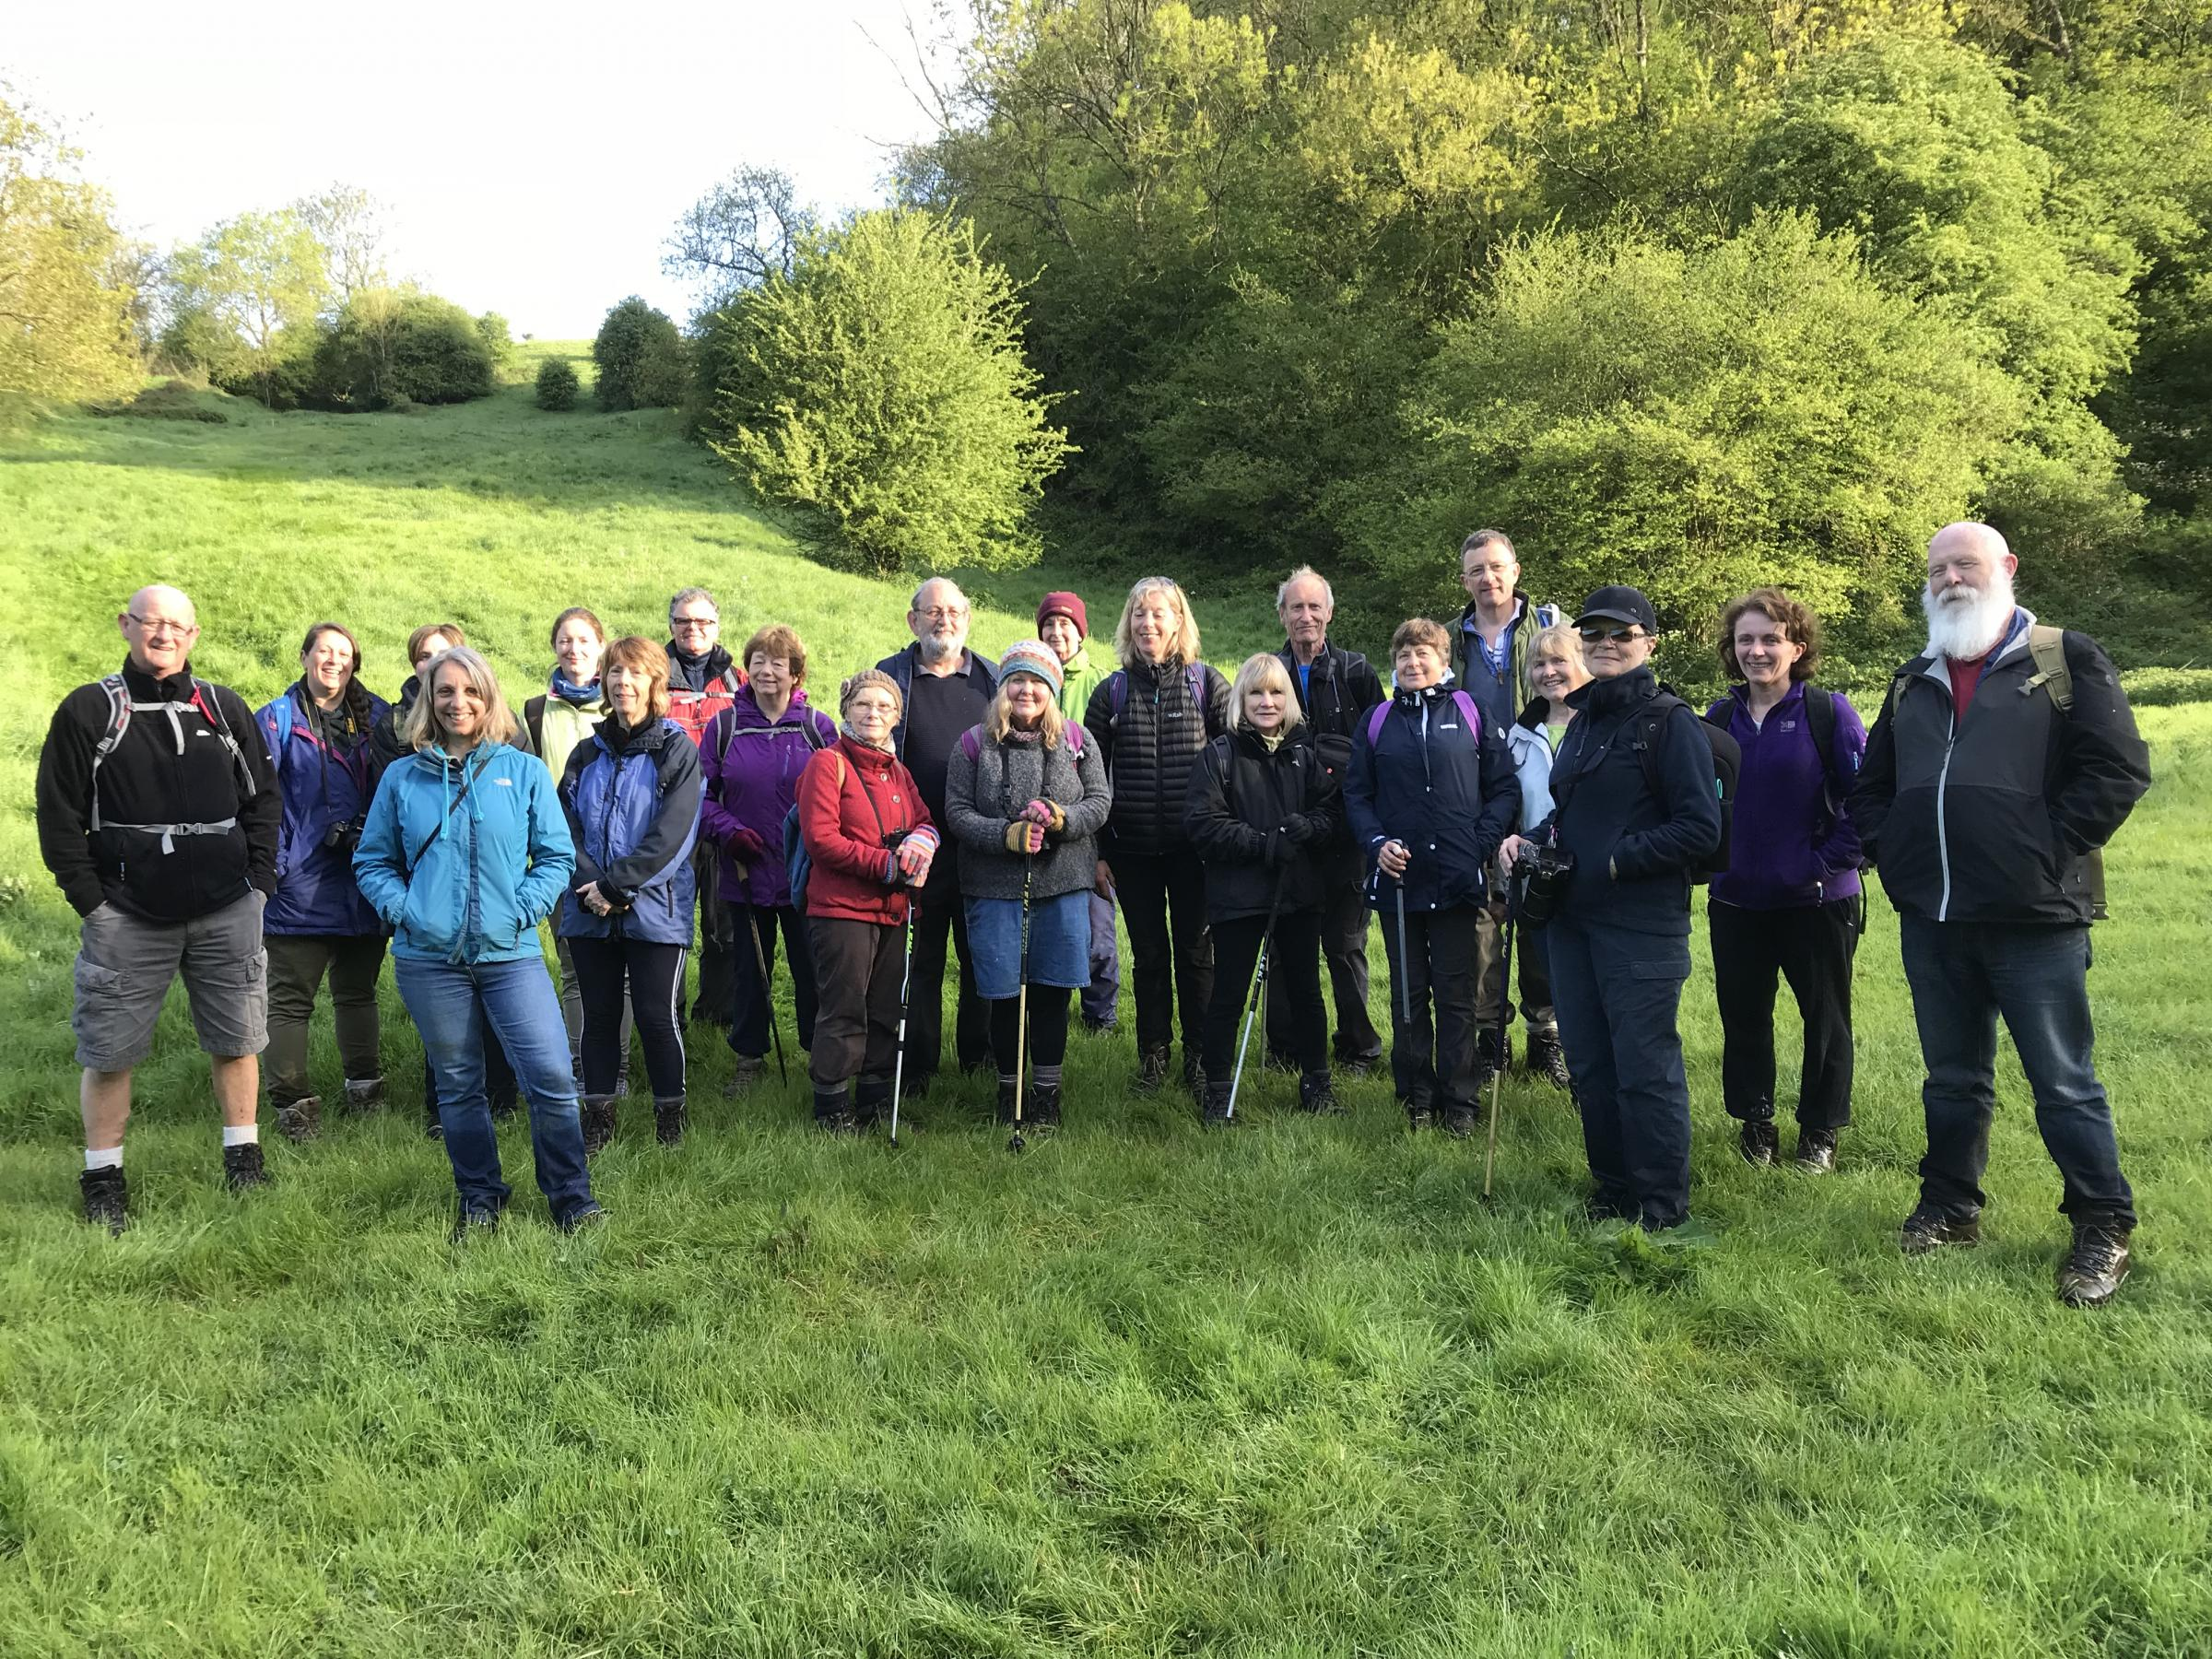 Wotton Walking Festival hailed as a great success